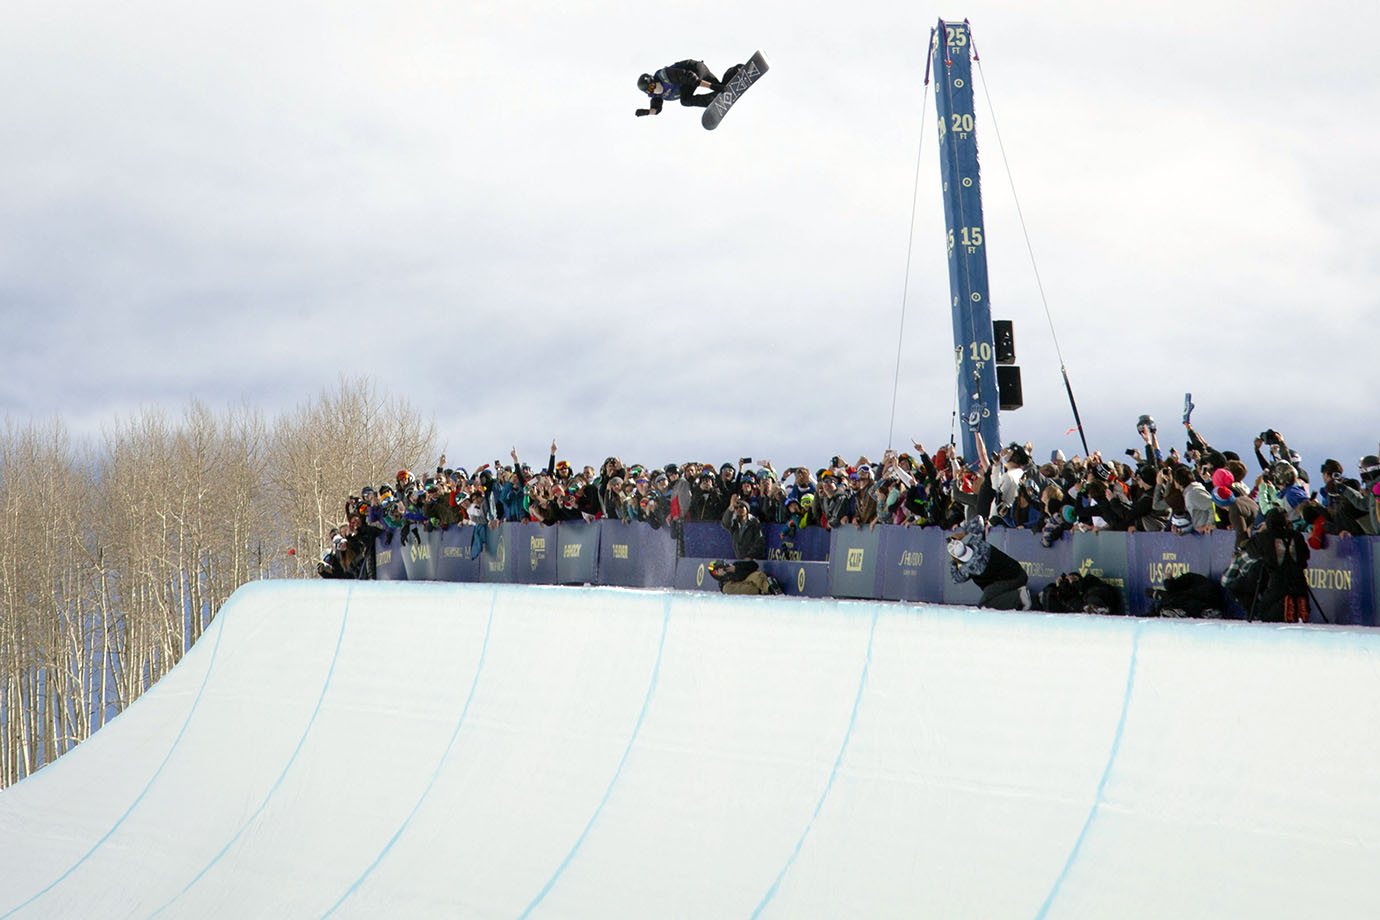 After a disappointing showing in the Slopestyle final, Shaun White asserts his dominance in the Superpipe. All three of his runs were nostalgic of Shaun's past success at the U.S. Open. This was his sixth Superpipe win at the competition.